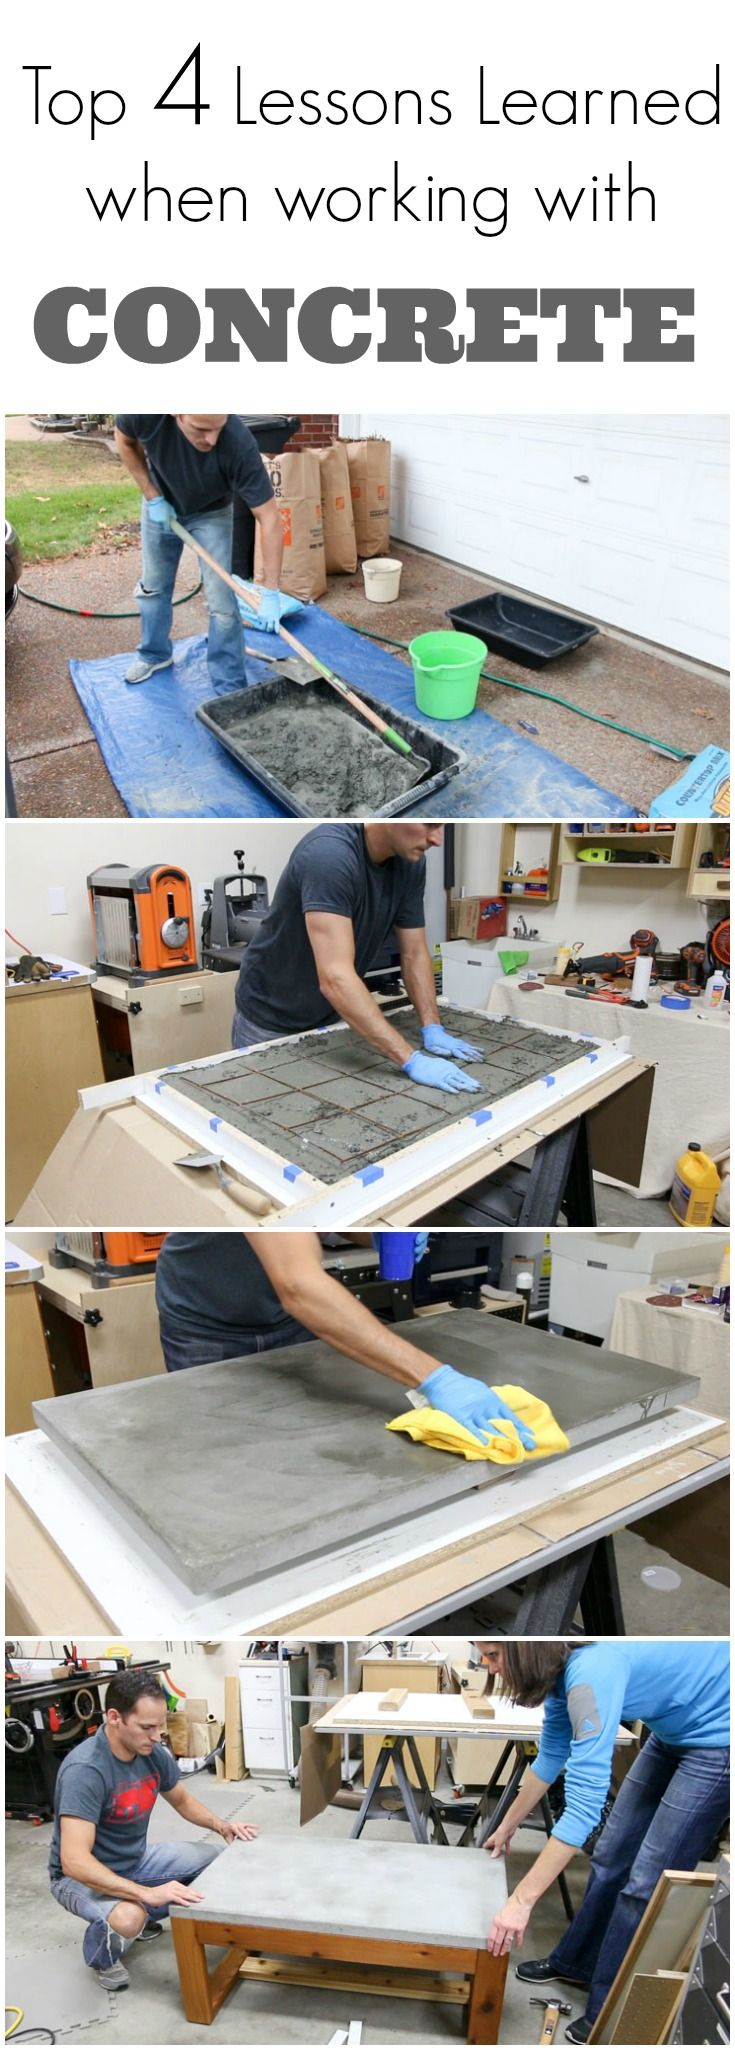 See the top 4 lessons I learned when working with concrete.  I made a concrete table top and learned what NOT to do along the way.  Watch this video to see the concrete top table I made and the things(Counter Top Ideas)